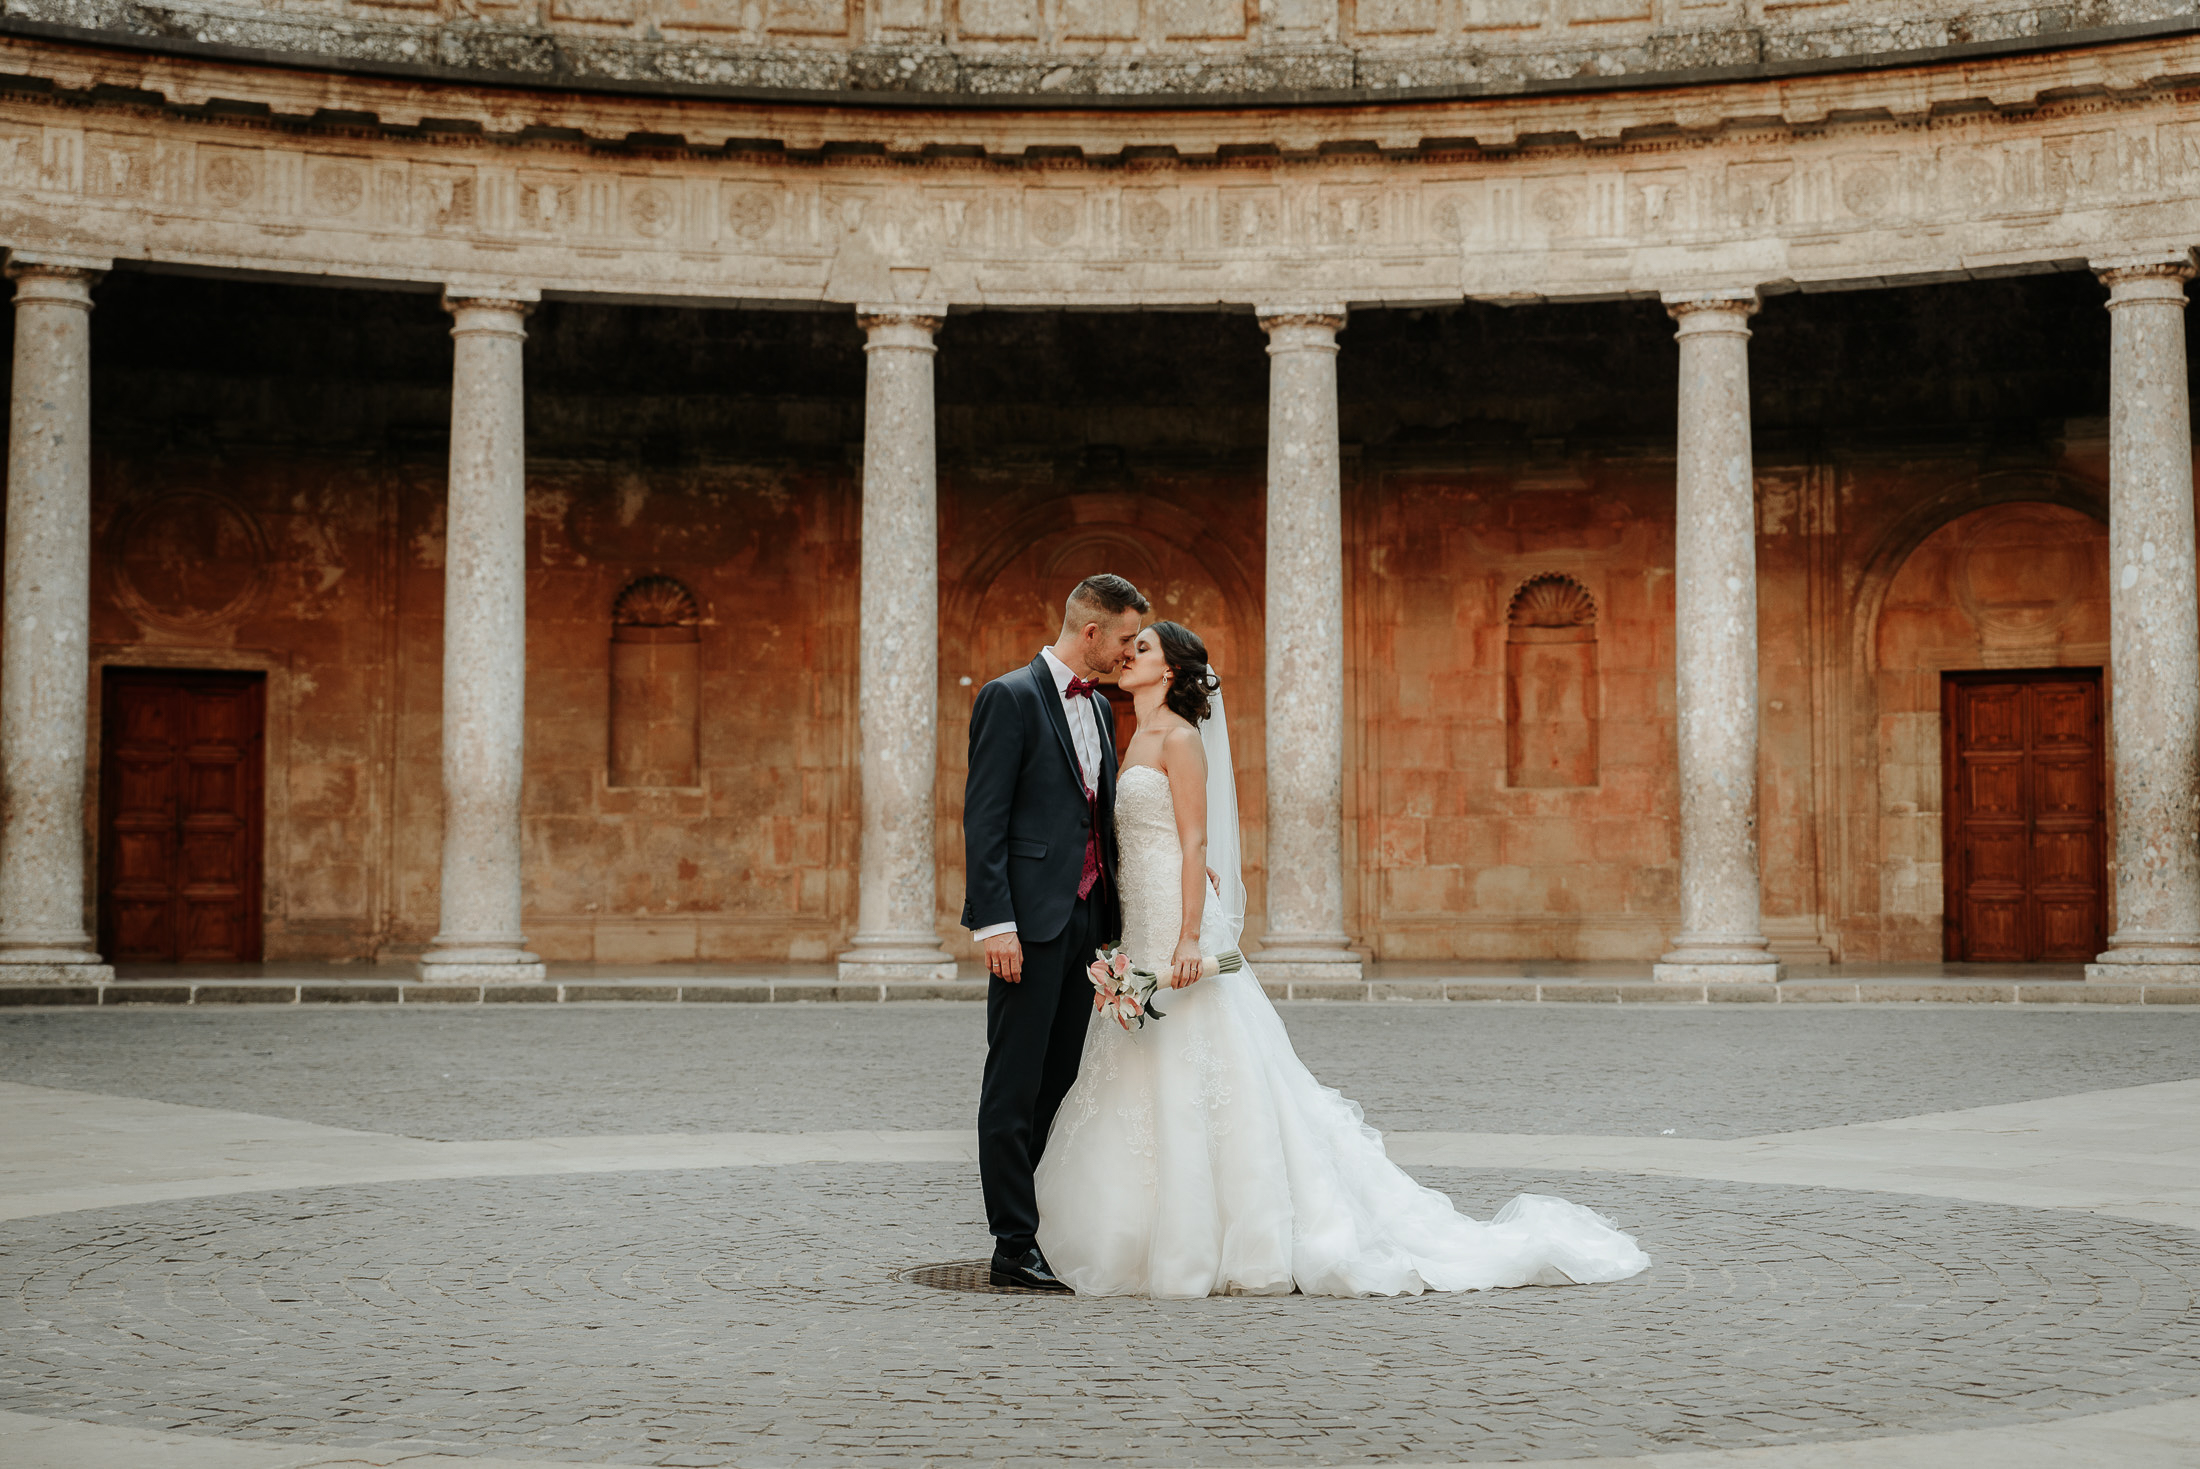 Wedding in Alhambra, Couple at the Palace of Charles V